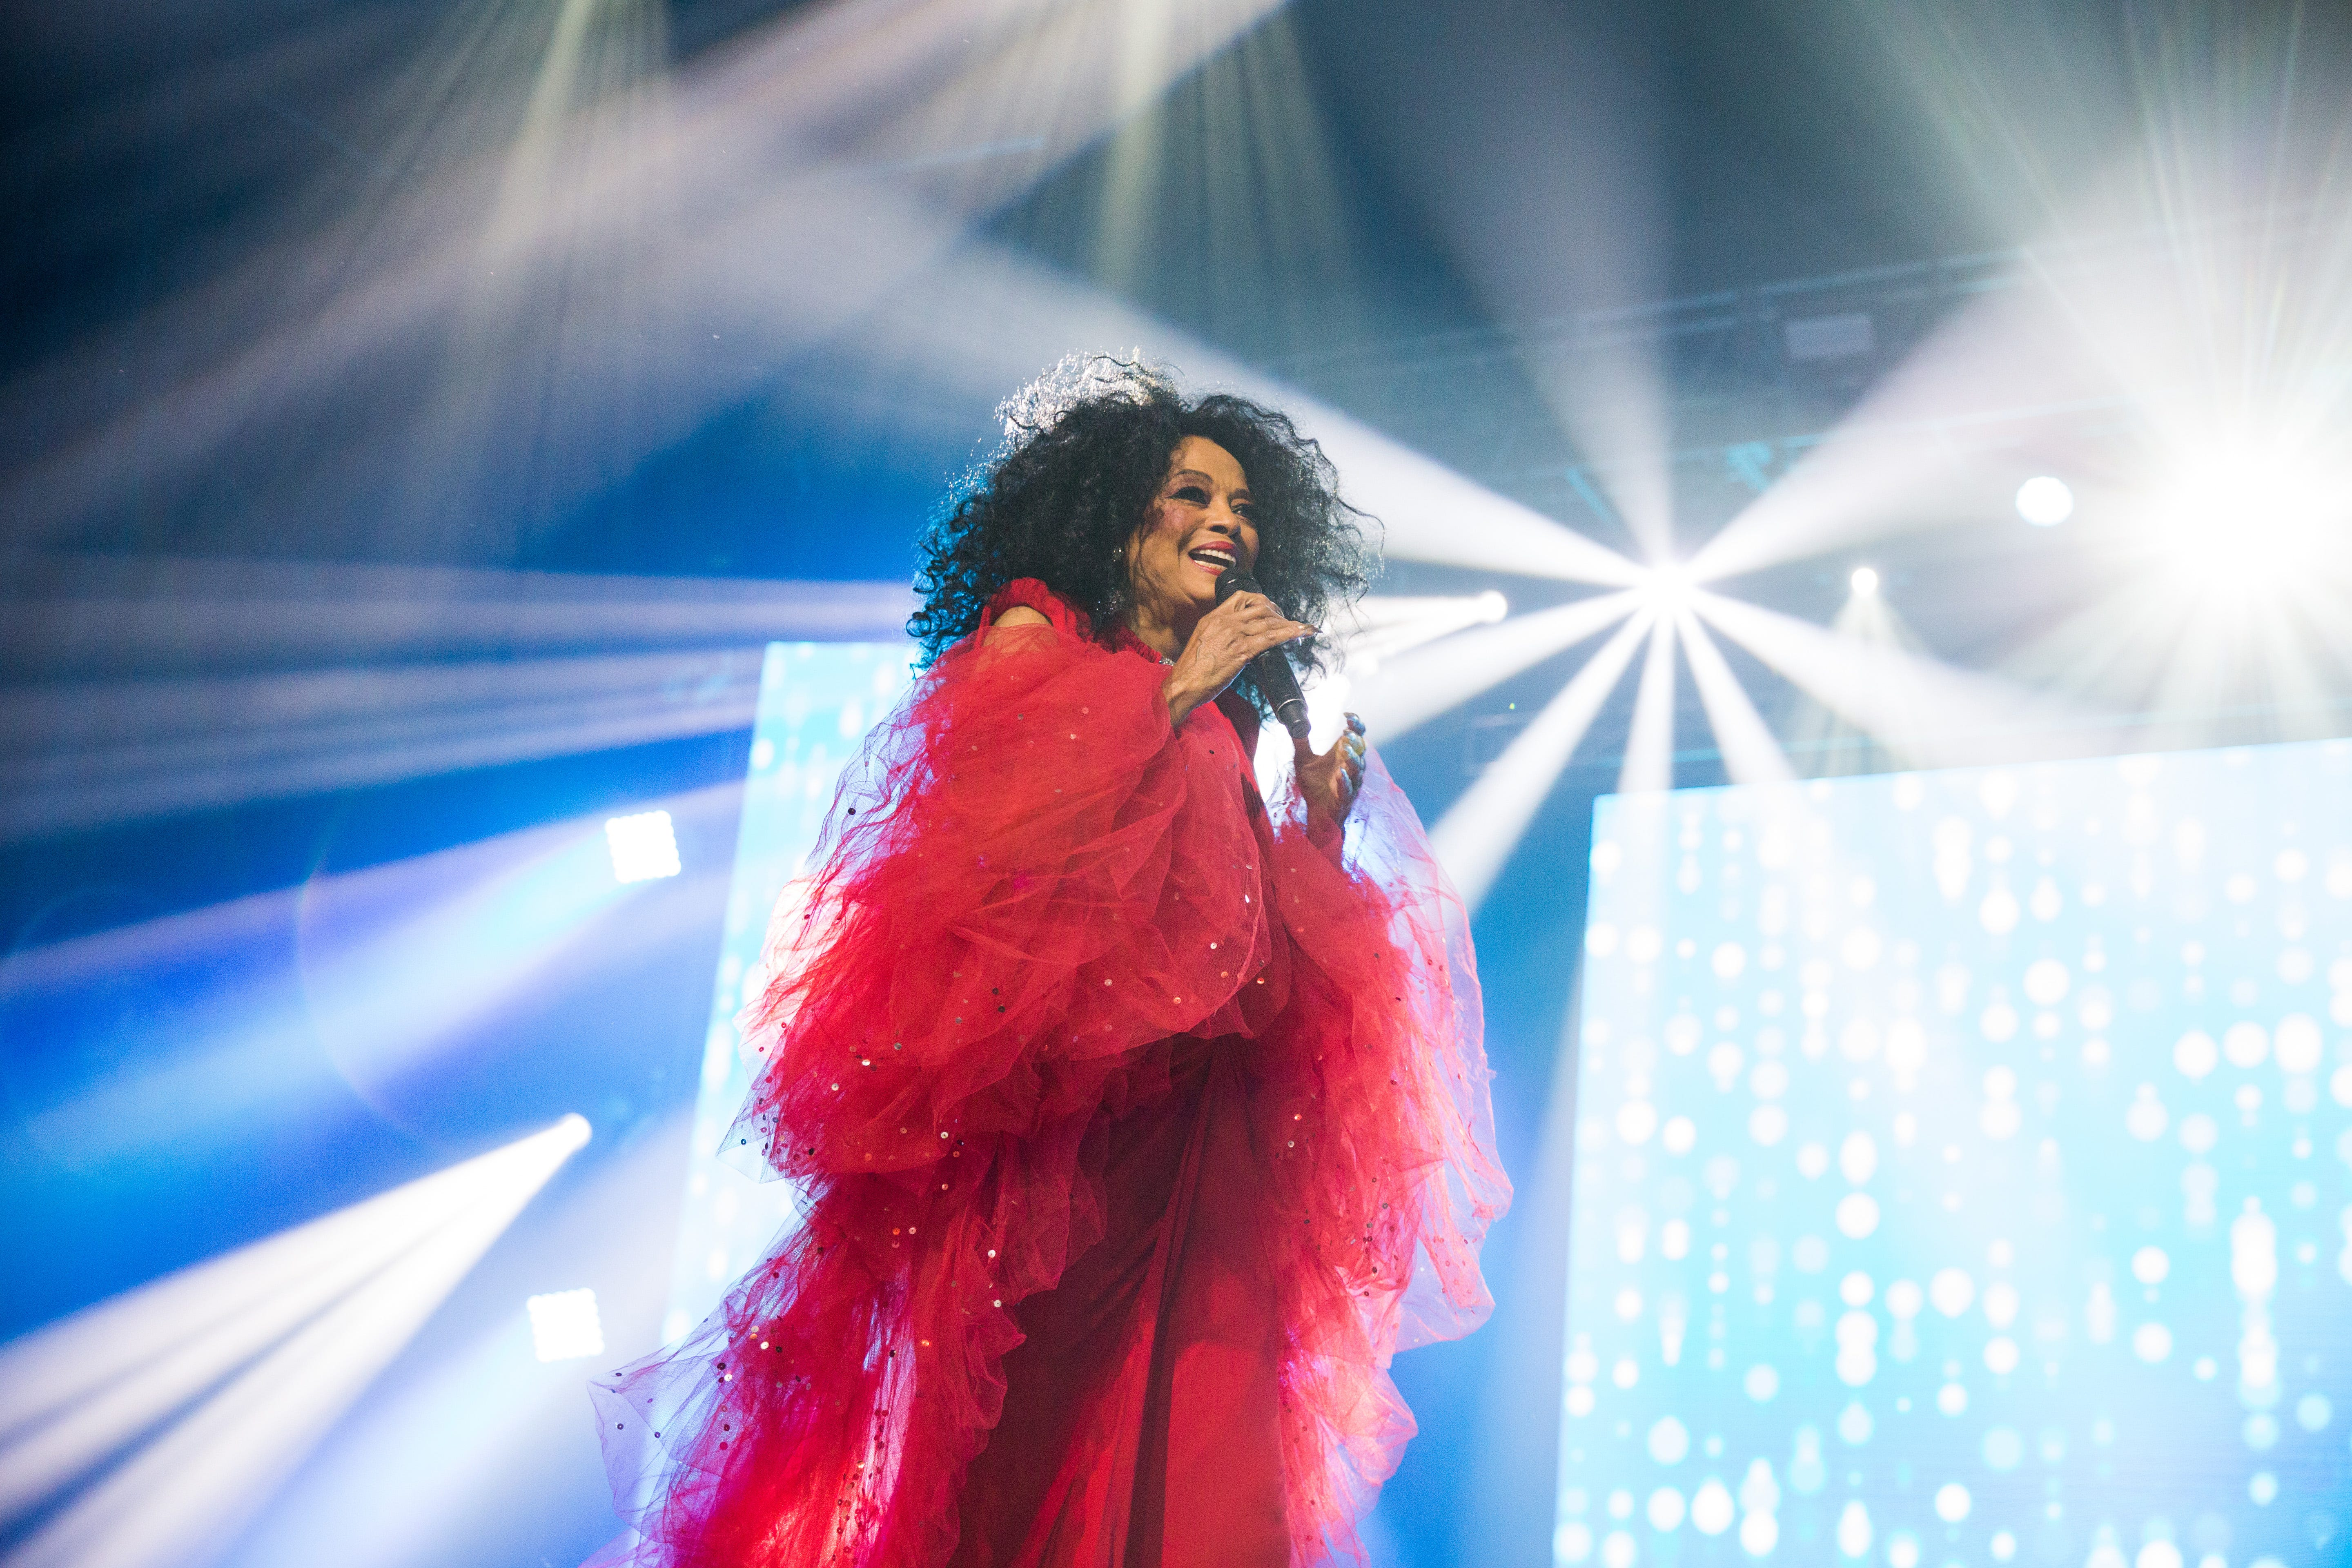 When Diana Ross walked into Nick Tahou's, the joint went wild, a witness says.